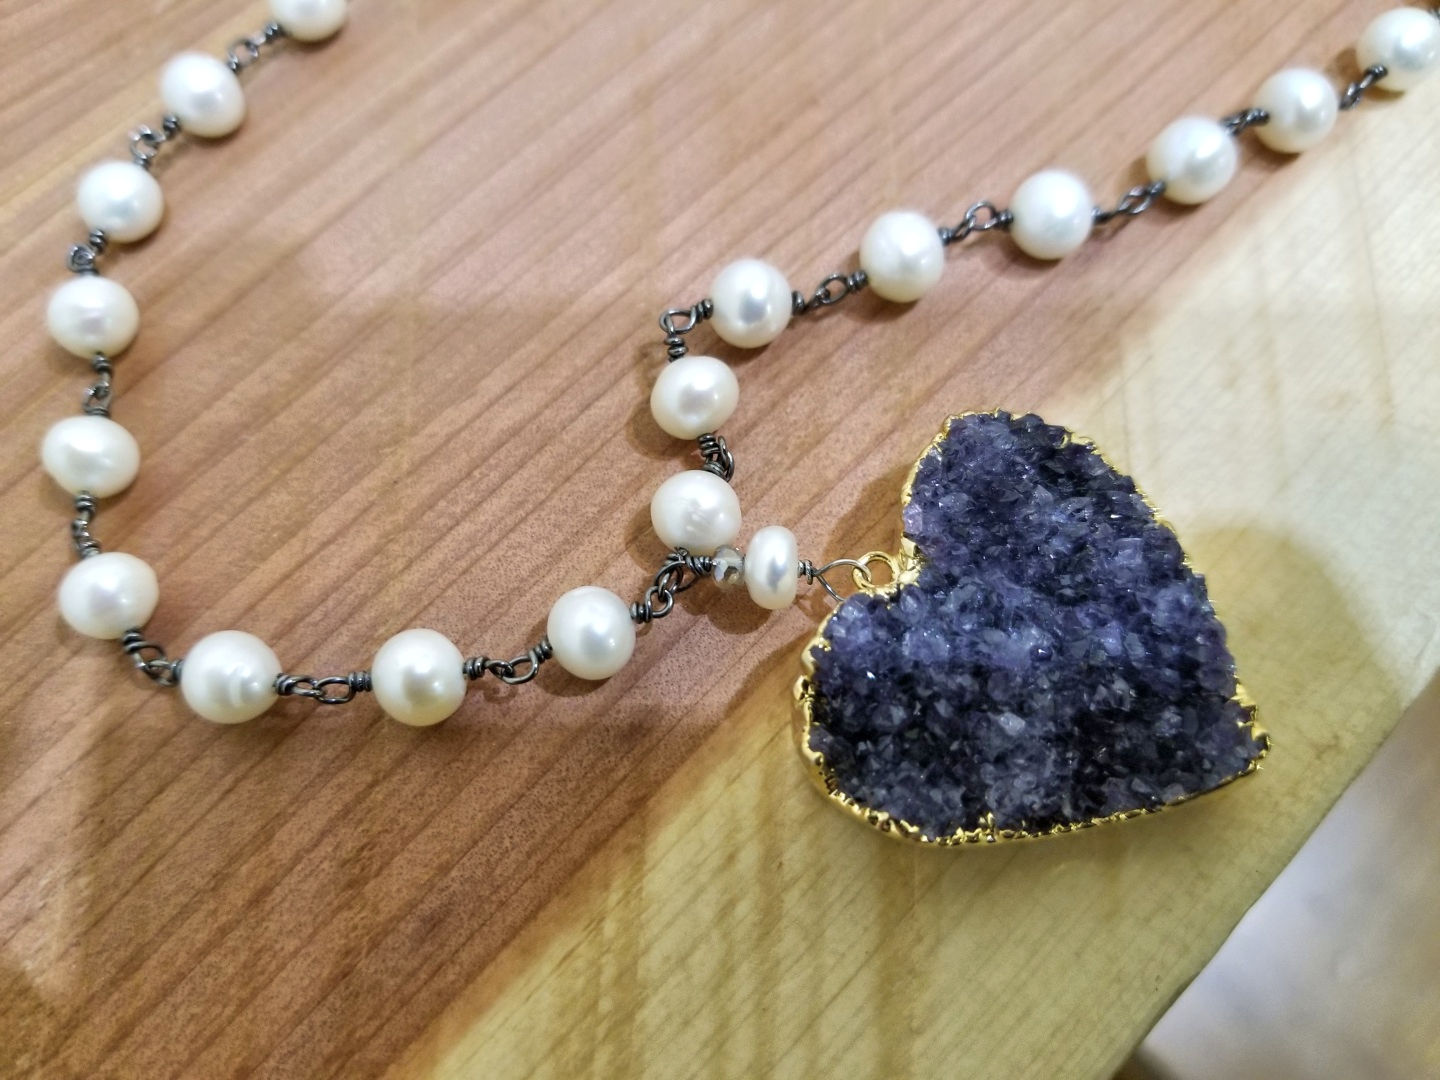 Pearl Necklace with Amethyst Druzy Pendant, by Sage of Grace